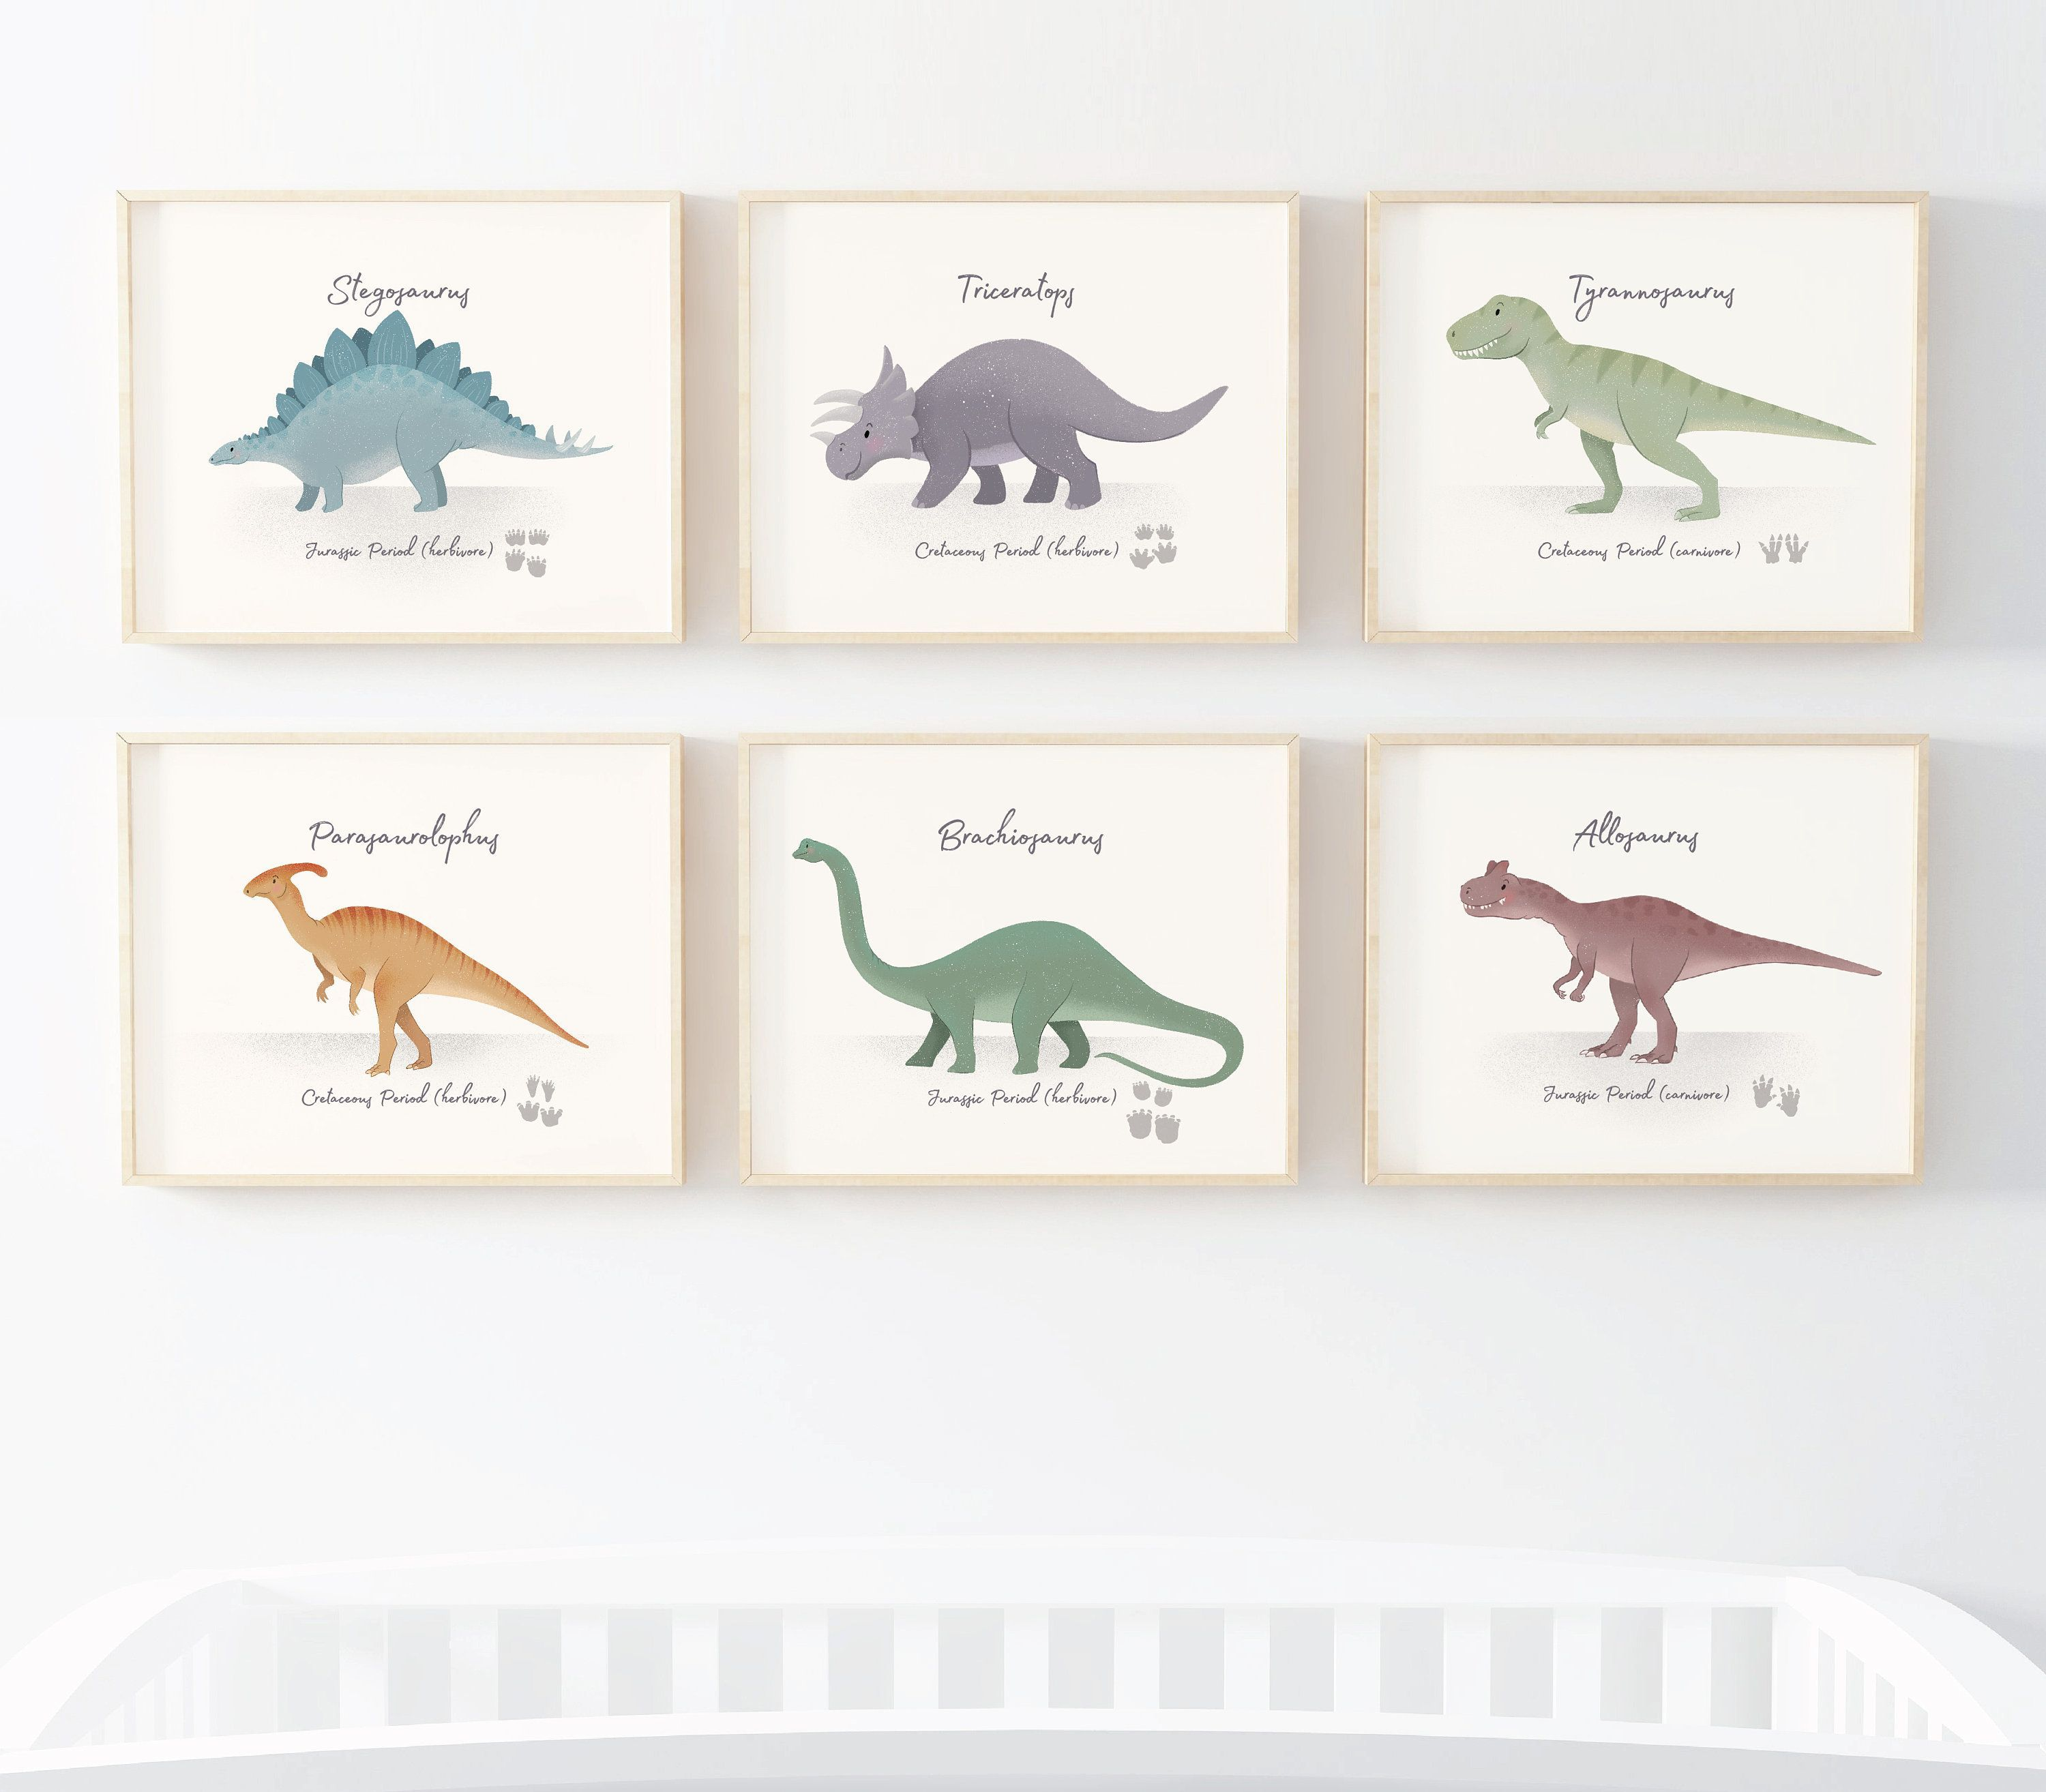 Set of 6 Dinosaur nursery prints, nursery wall art, dinosaur decor, boys room wall art, kids room decor, dinosaur art, triceratops, baby art #dinosaurnursery Set of 6 Dinosaur nursery prints, nursery wall art, dinosaur decor, boys room wall art, kids room decor, dinosaur art, triceratops, baby art #dinosaurnursery